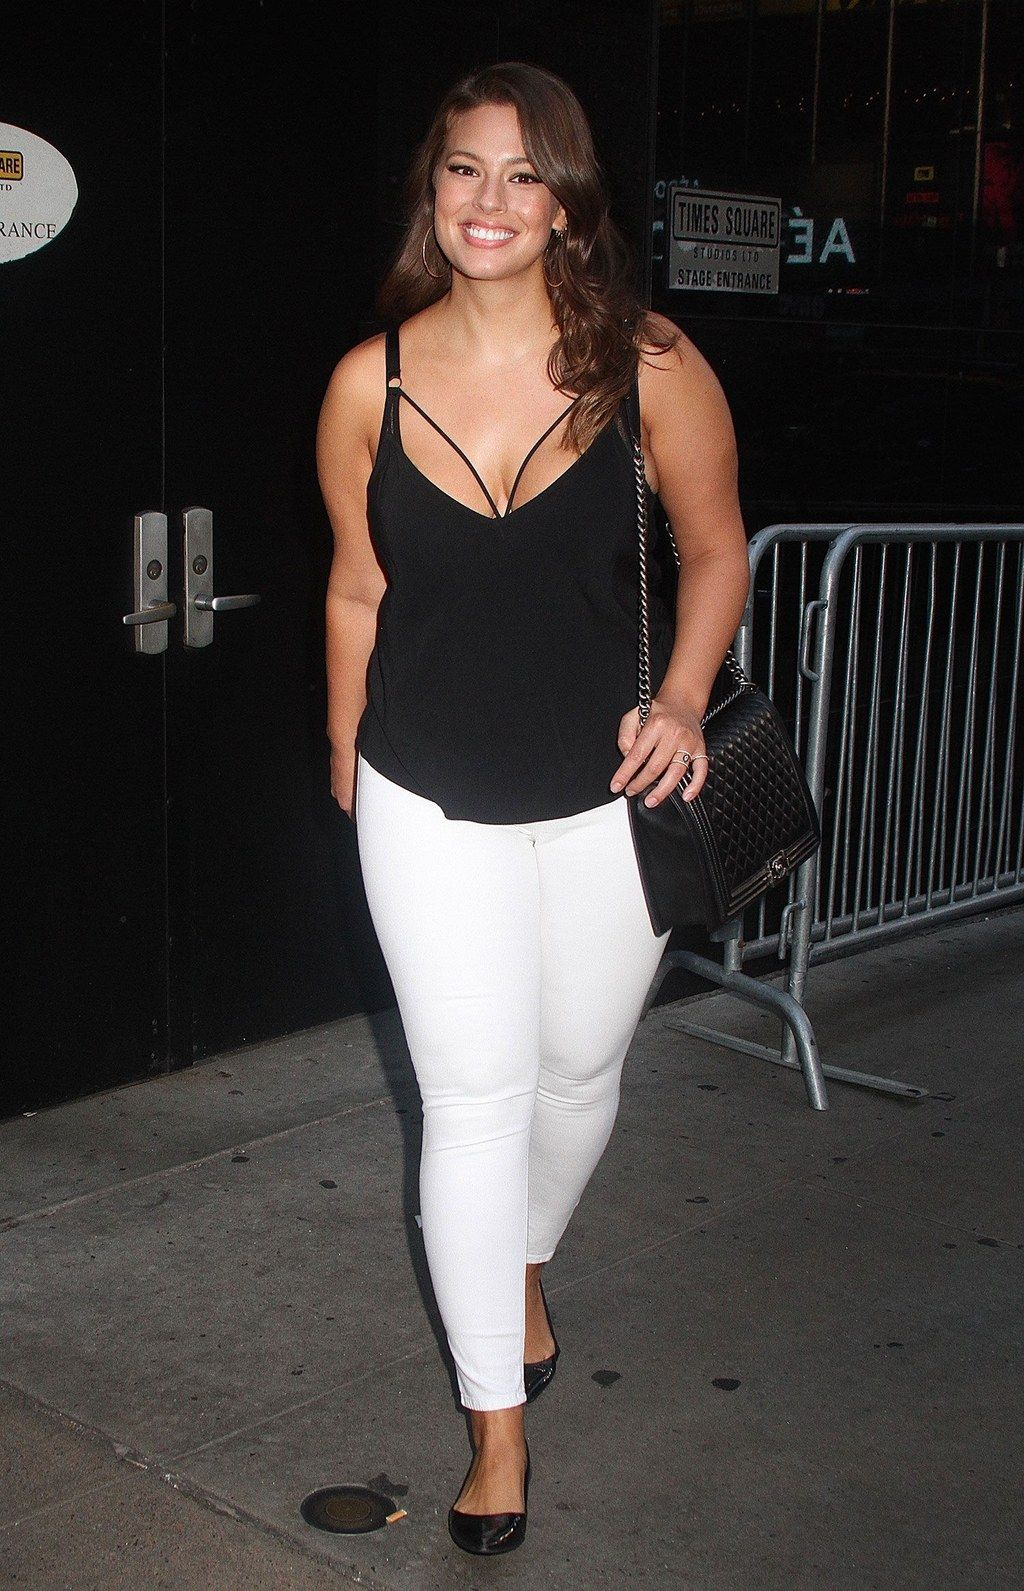 Ashley Graham in higher rise white jeans; image via Pinterest.